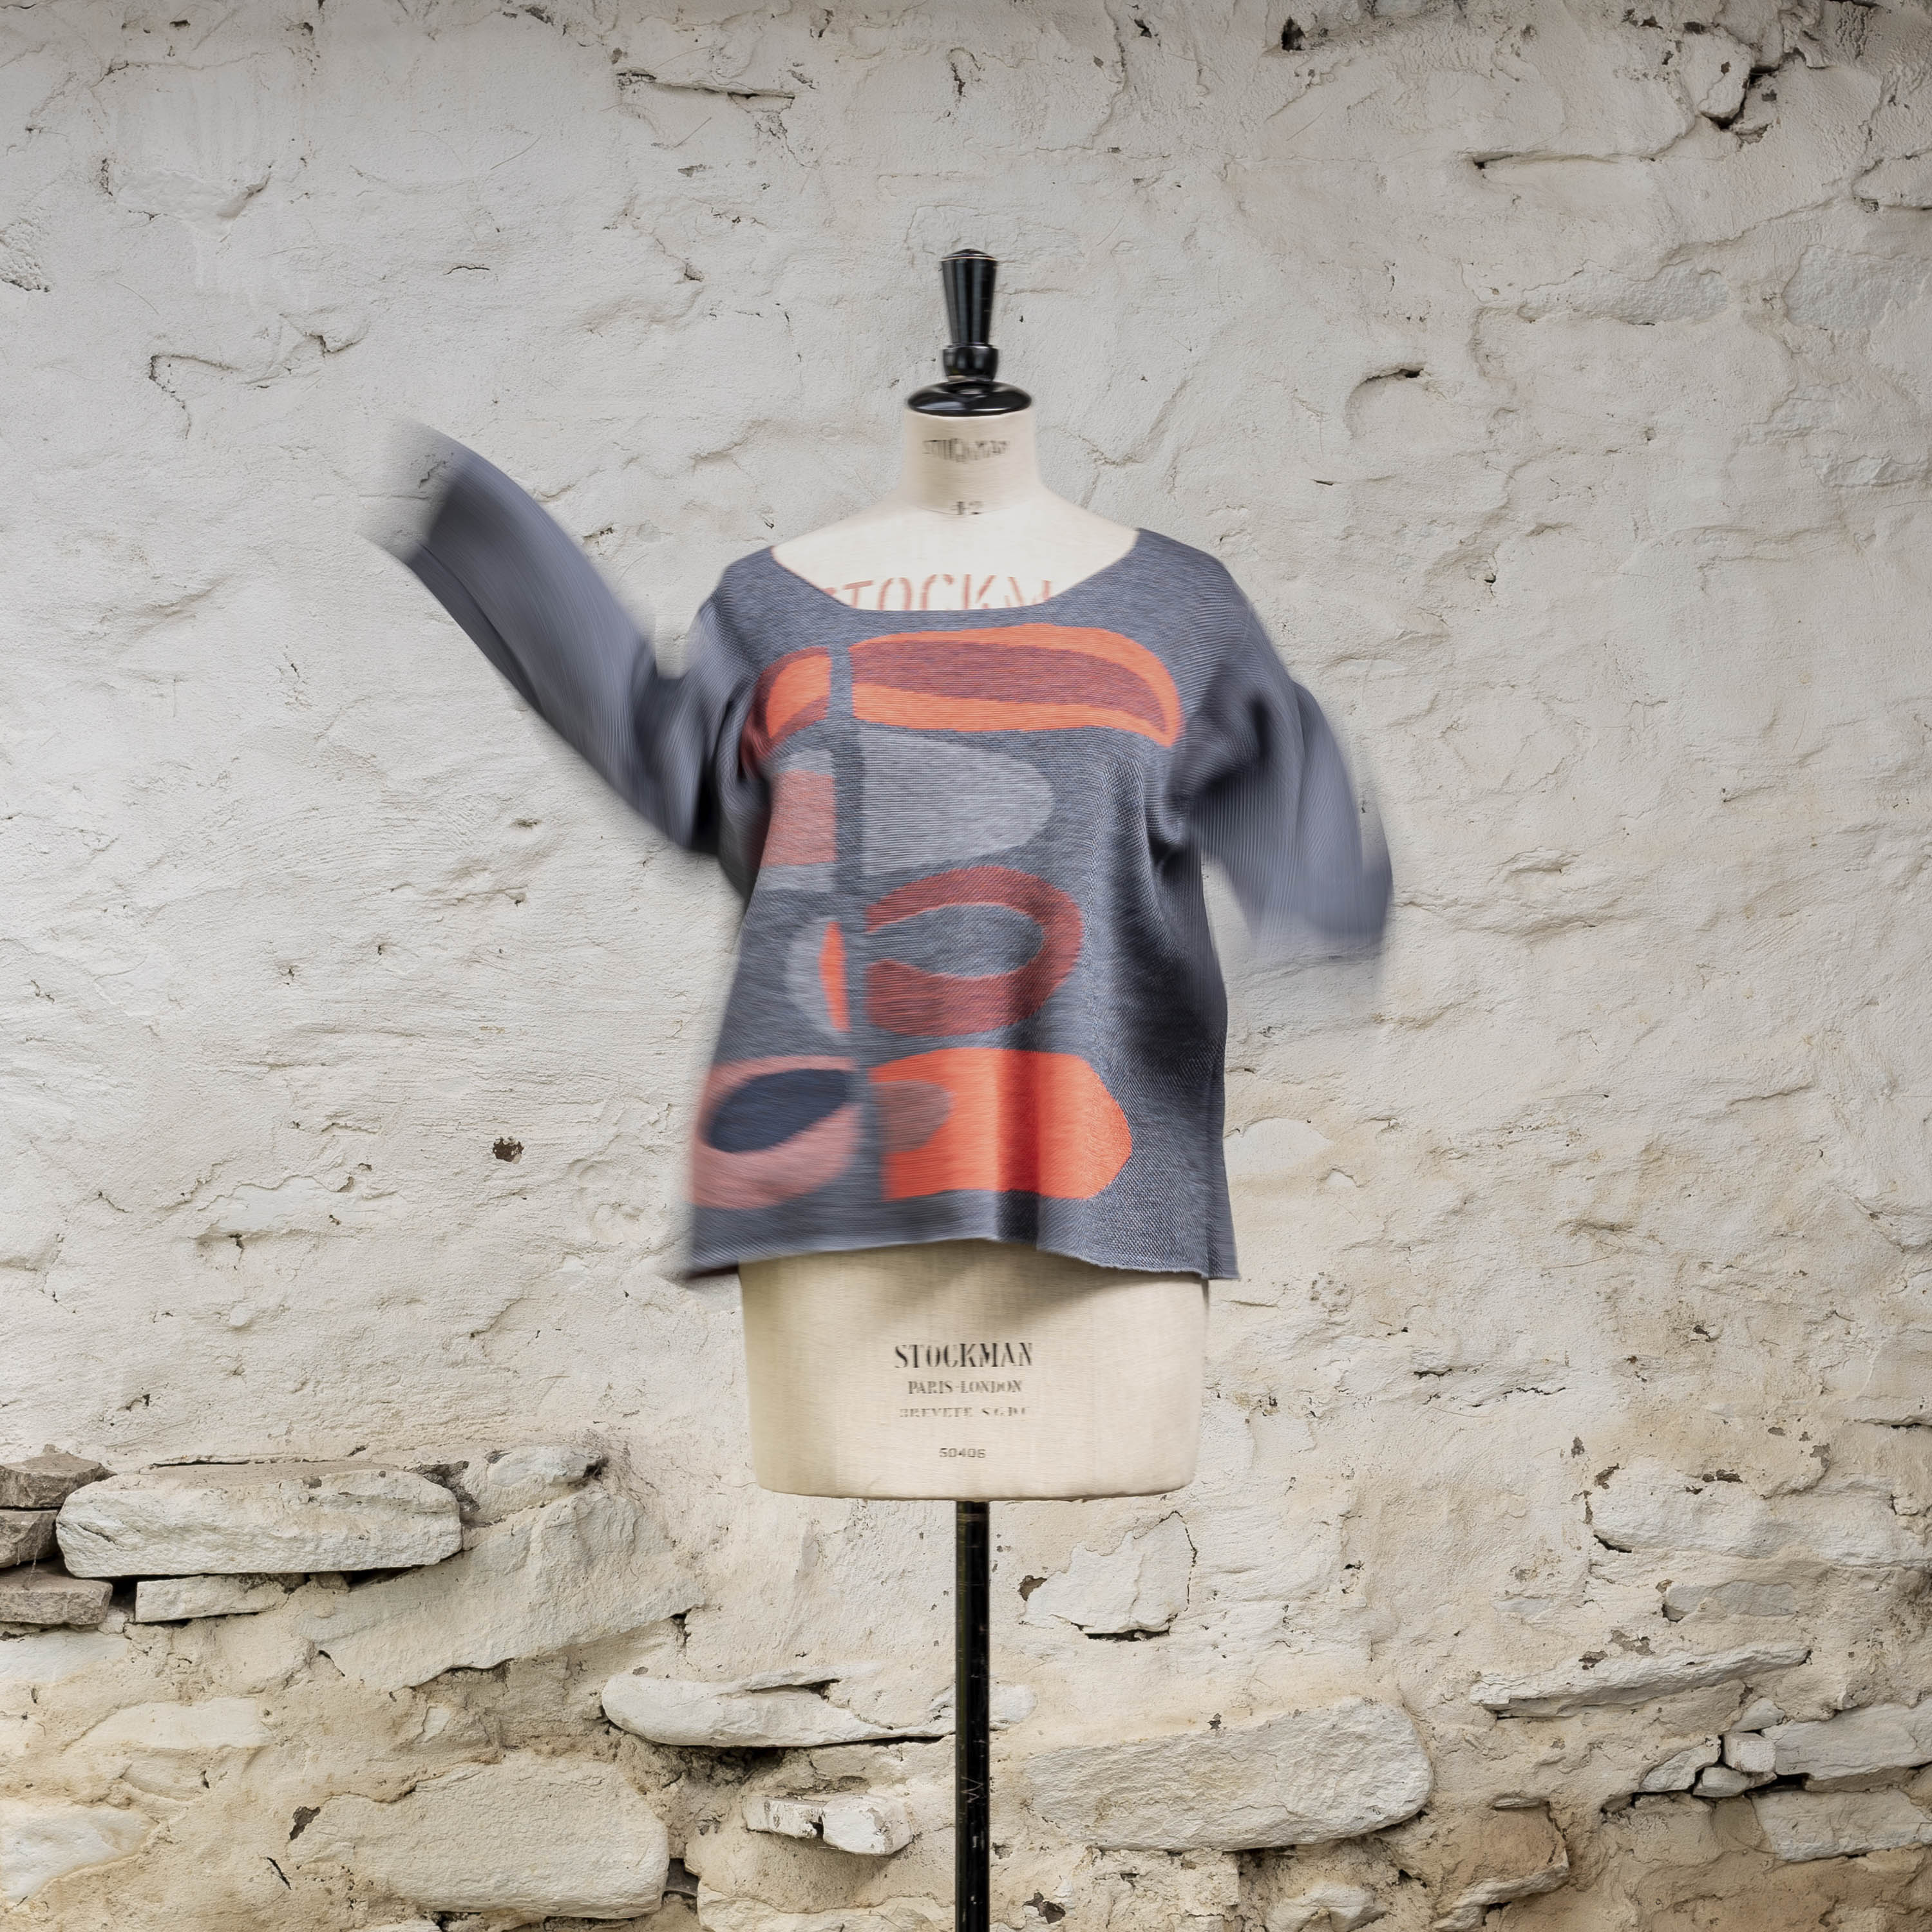 Contemporary Scottish knitwear, jumper in abstract mid-century inspired pattern. Coral and blues knitted in extra-fine merion